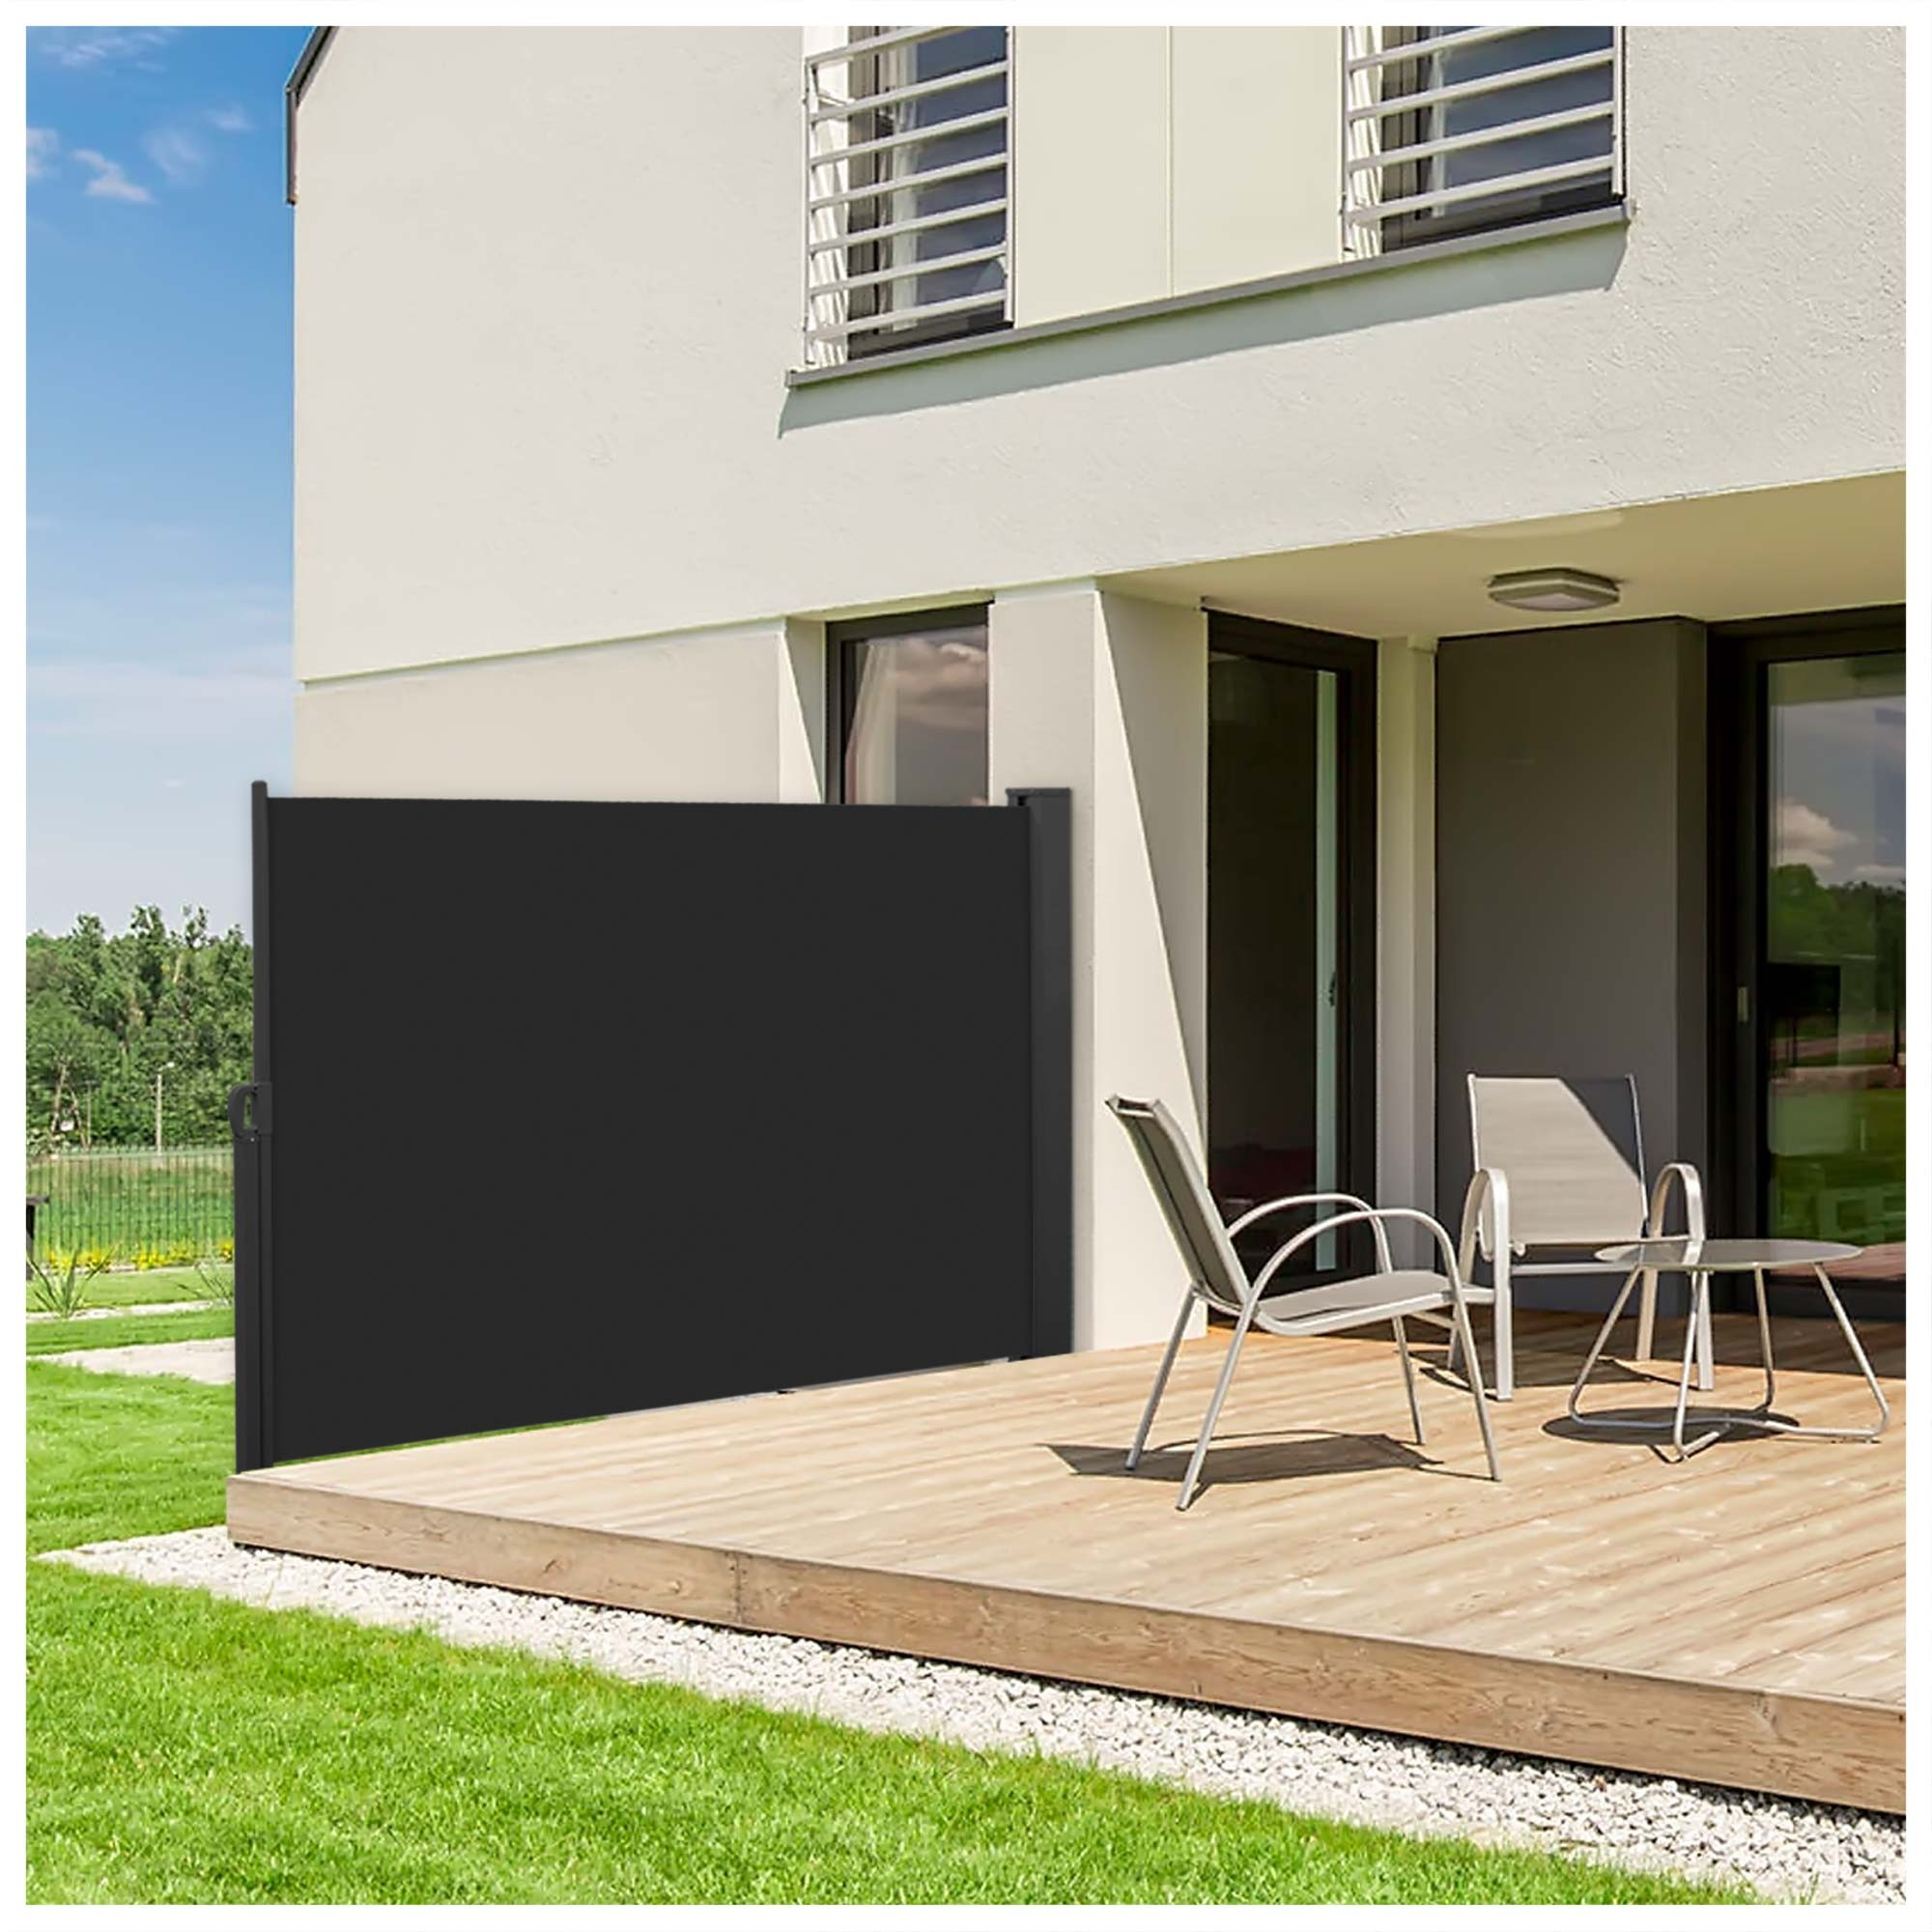 nemaxx store lat ral abri soleil balcon terrasse r tractable noir de 180x300cm ebay. Black Bedroom Furniture Sets. Home Design Ideas